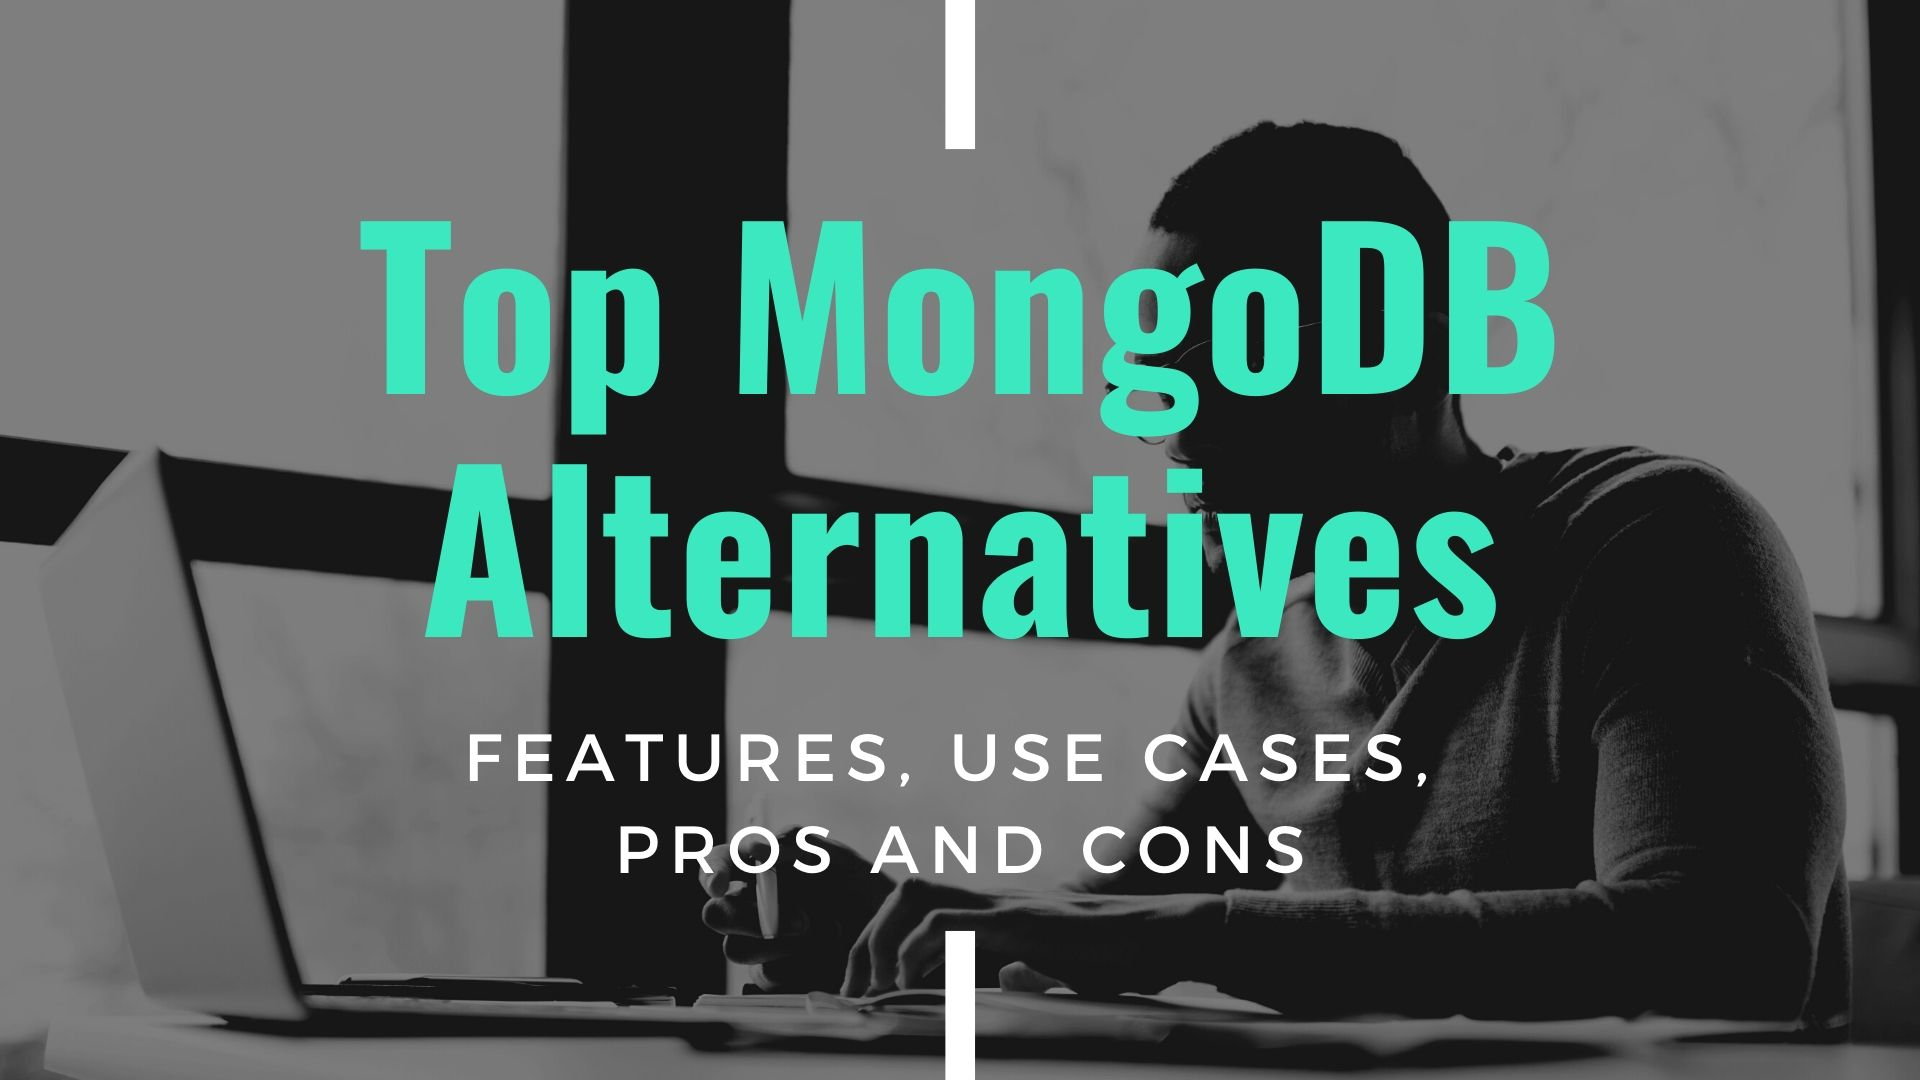 Top MongoDB Alternatives — Features, Use Cases, Pros and Cons